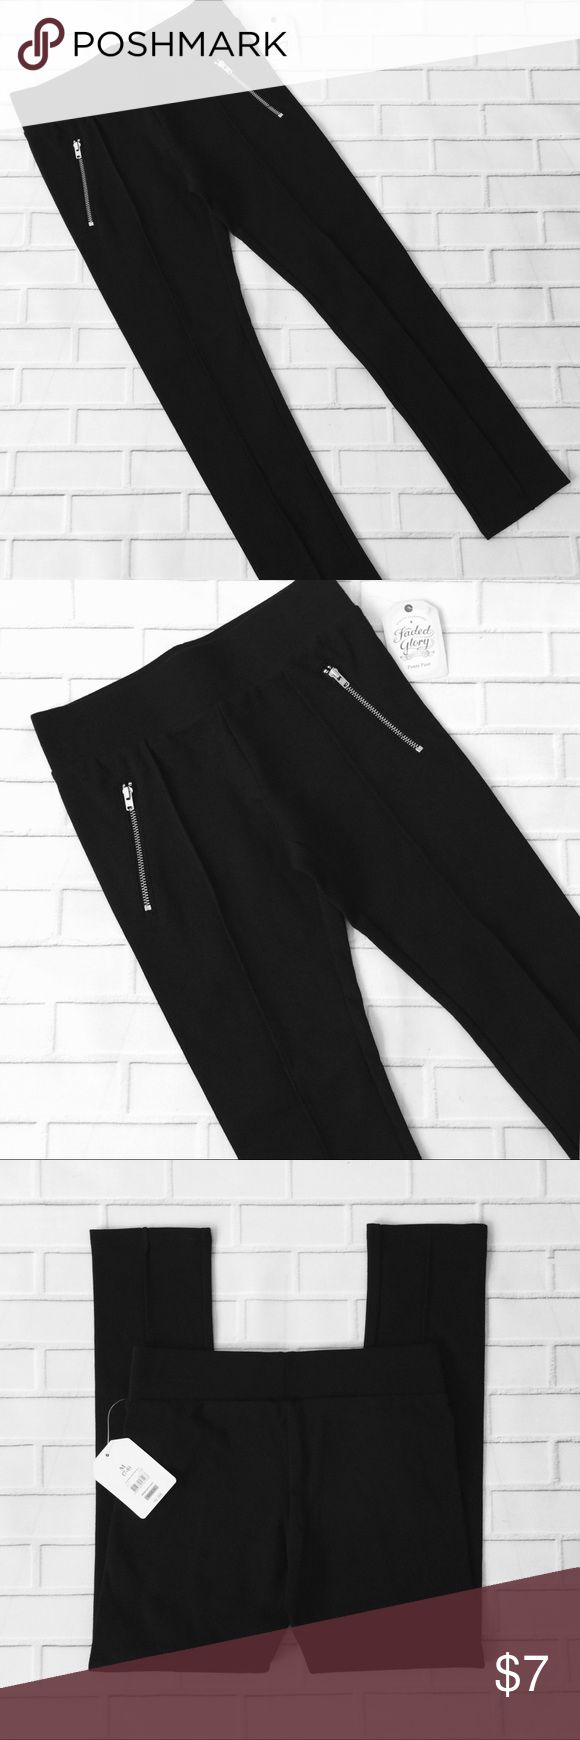 Make Bundle Offer🔸Girls NWT Zipper Front Leggings 🔹Like items 🔹Add to a bundle 🔹Make bundle offer  ▫️Brand: Faded Glory ▫️Size: M (7-8) ▫️Material: Cotton/Polyester/Spandex ▫Condition: NWT ▫️Flaws: NONE  ▪️NO Trade/Hold ▪️Next Day Shipping ▪️Smoke Free/Kitty Friendly Home Faded Glory Bottoms Leggings